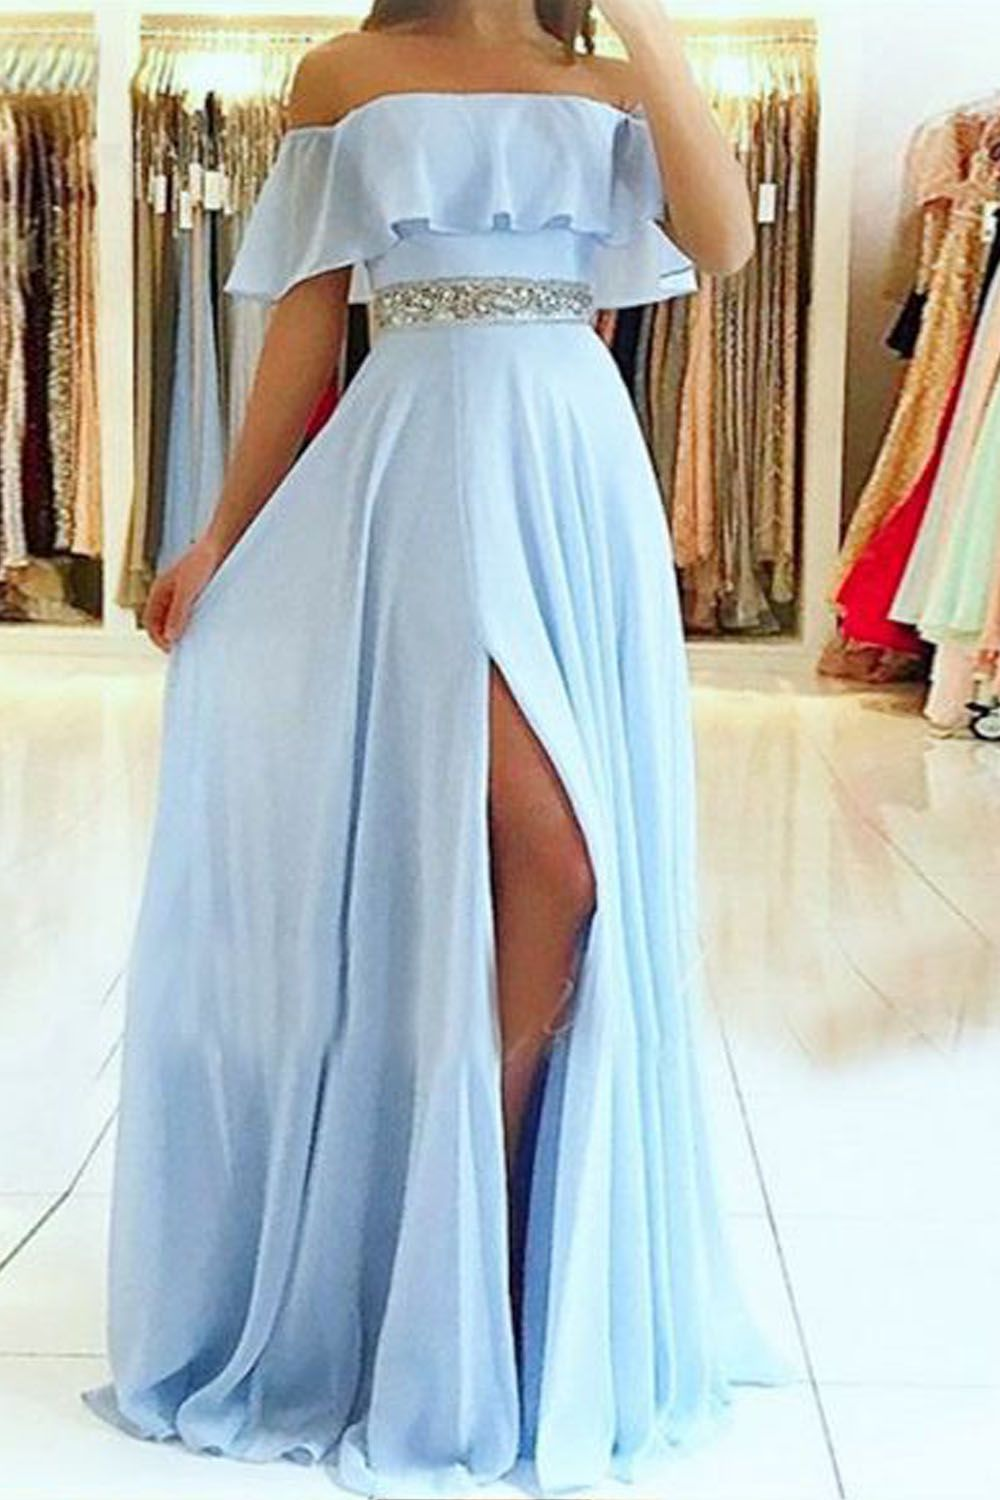 A Line Off The Shoulder Beaded Long Prom Dresses Formal Evening Dresses 601353 Split Prom Dresses Prom Dresses Long Long Prom Dresses Uk [ 1500 x 1000 Pixel ]